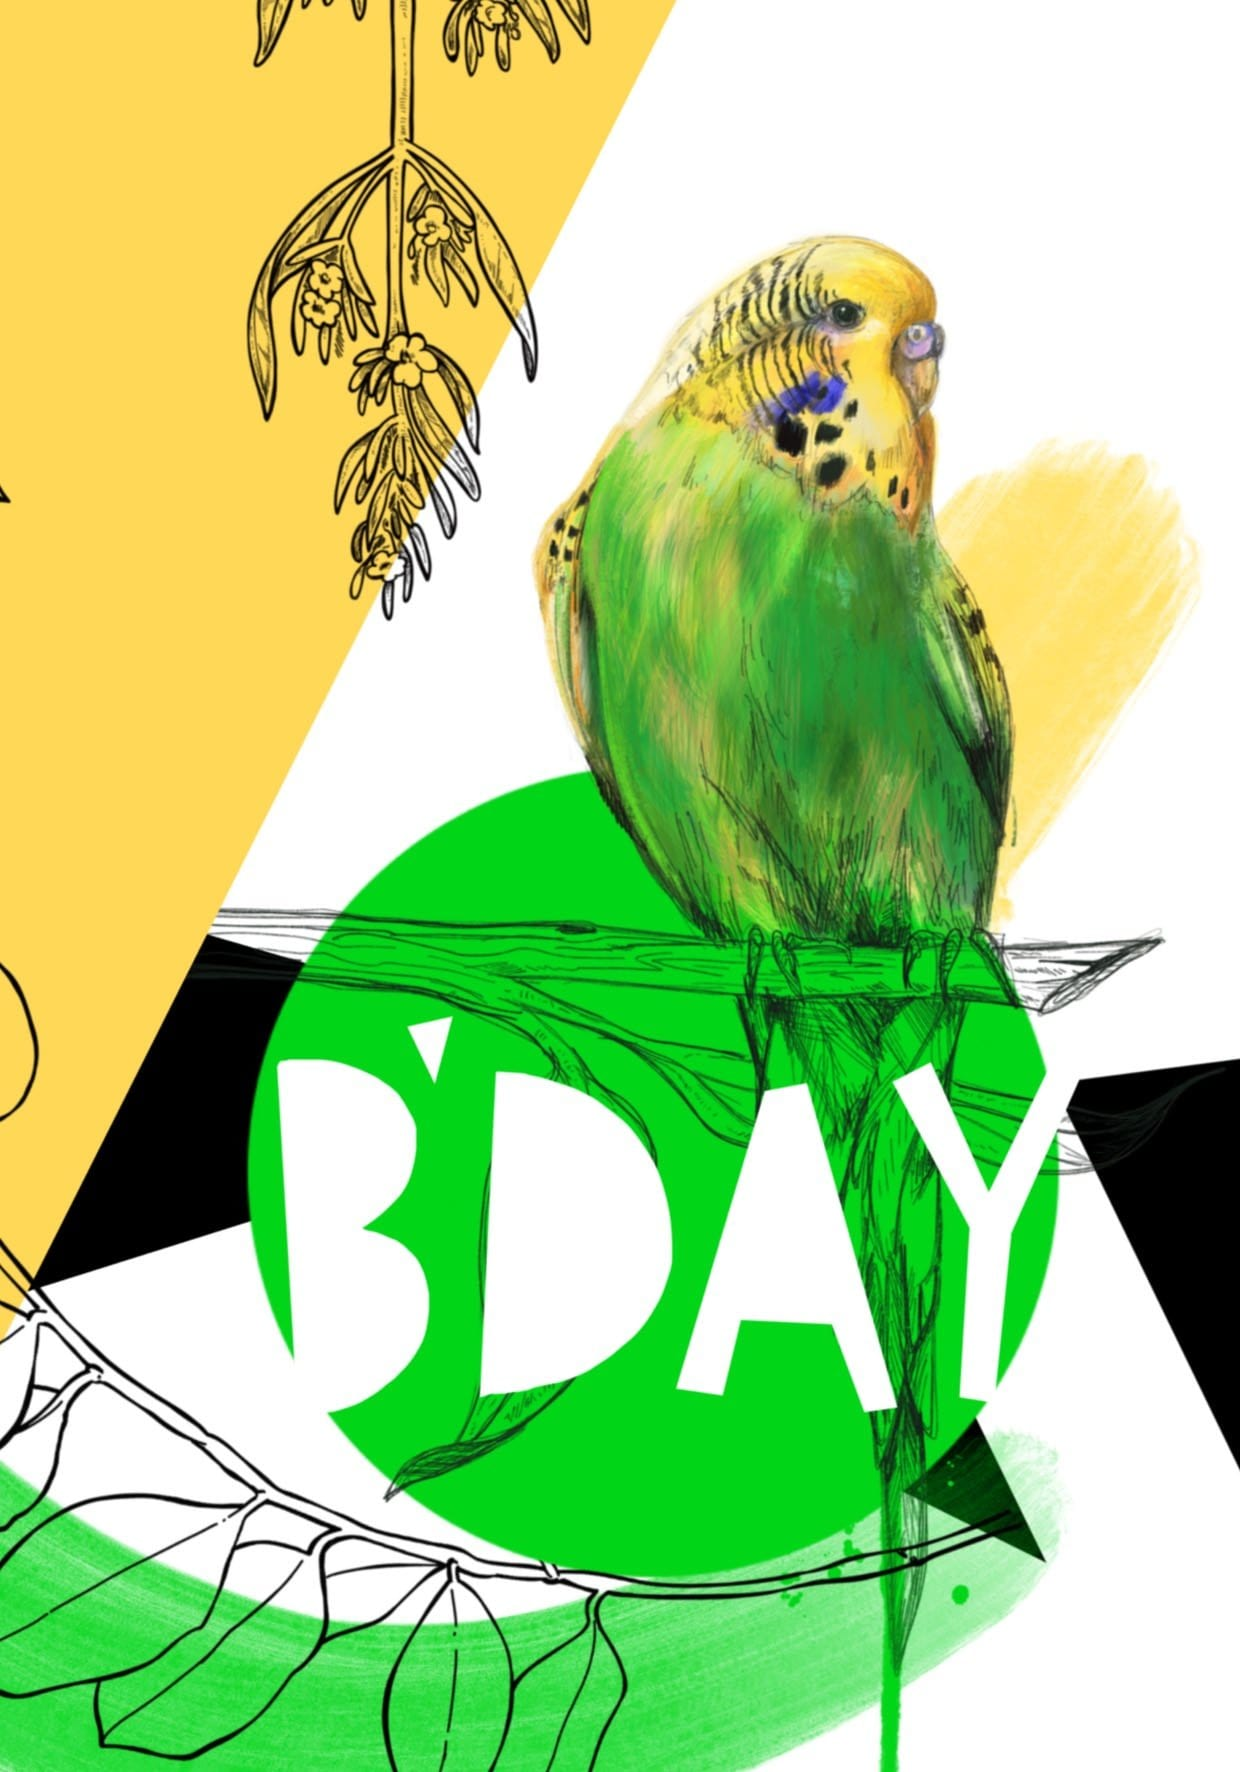 Budgie B'day Greeting Card